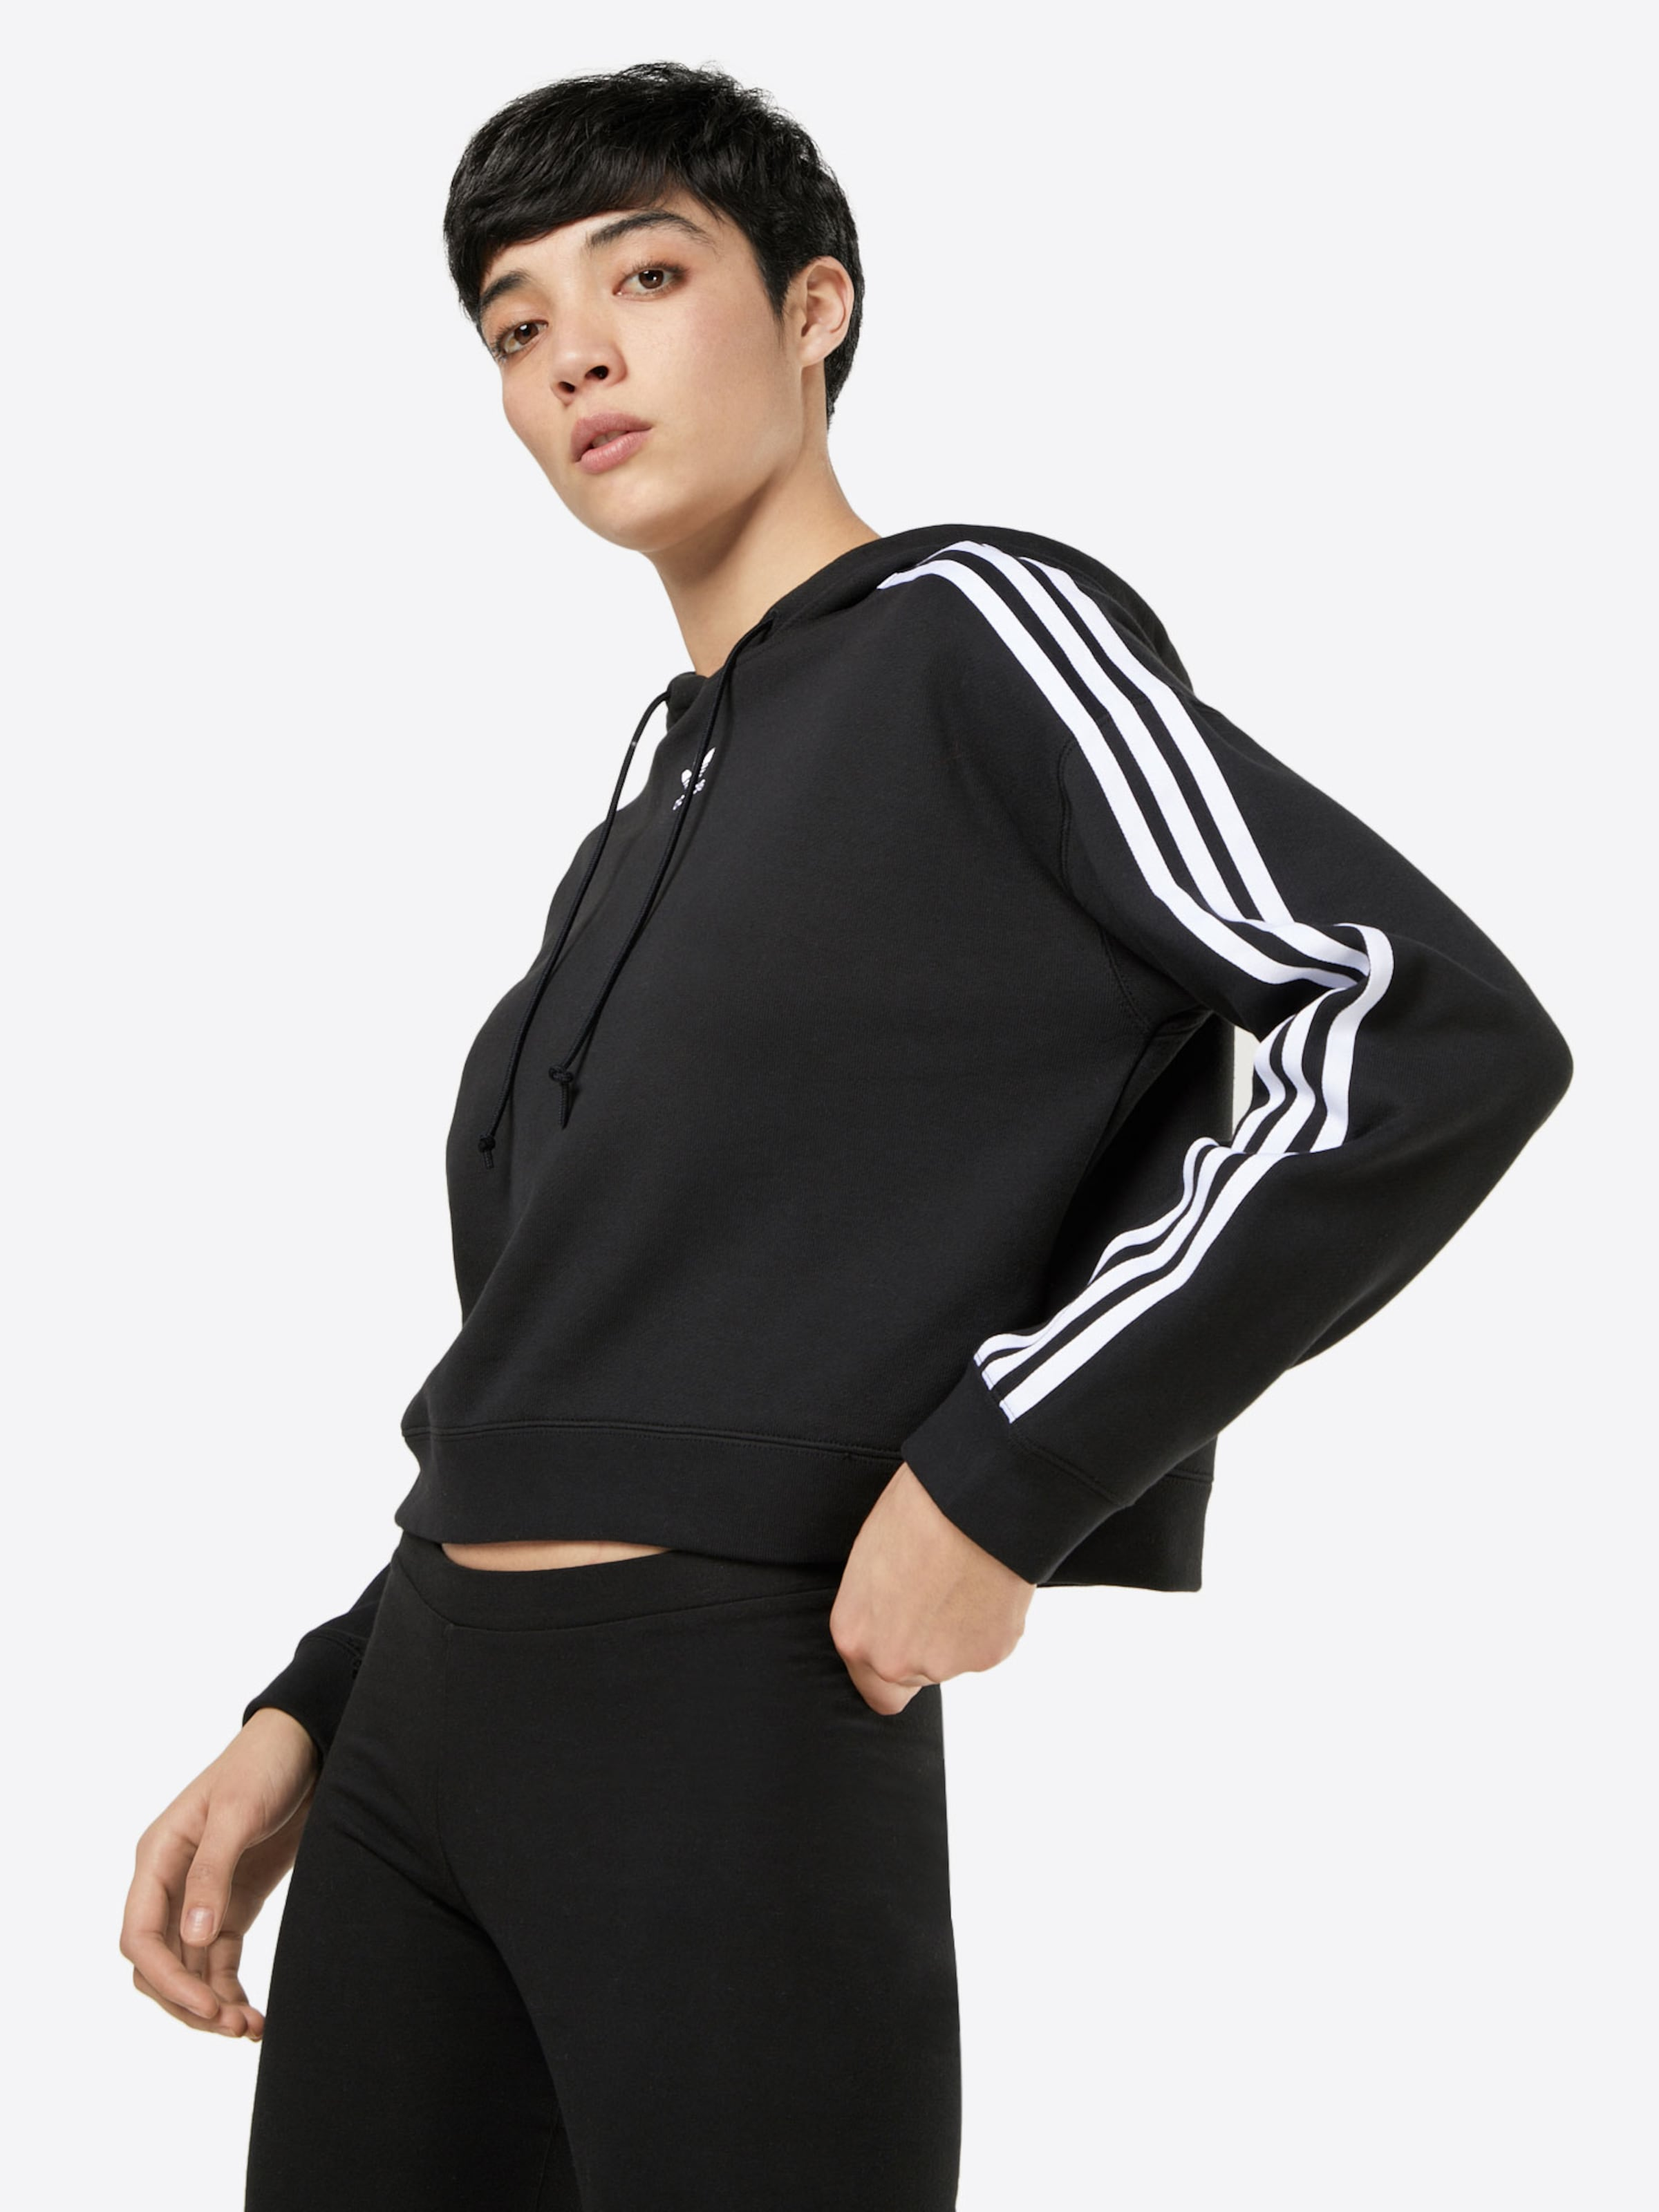 NoirBlanc Adidas Originals En Sweat shirt N8wn0vm